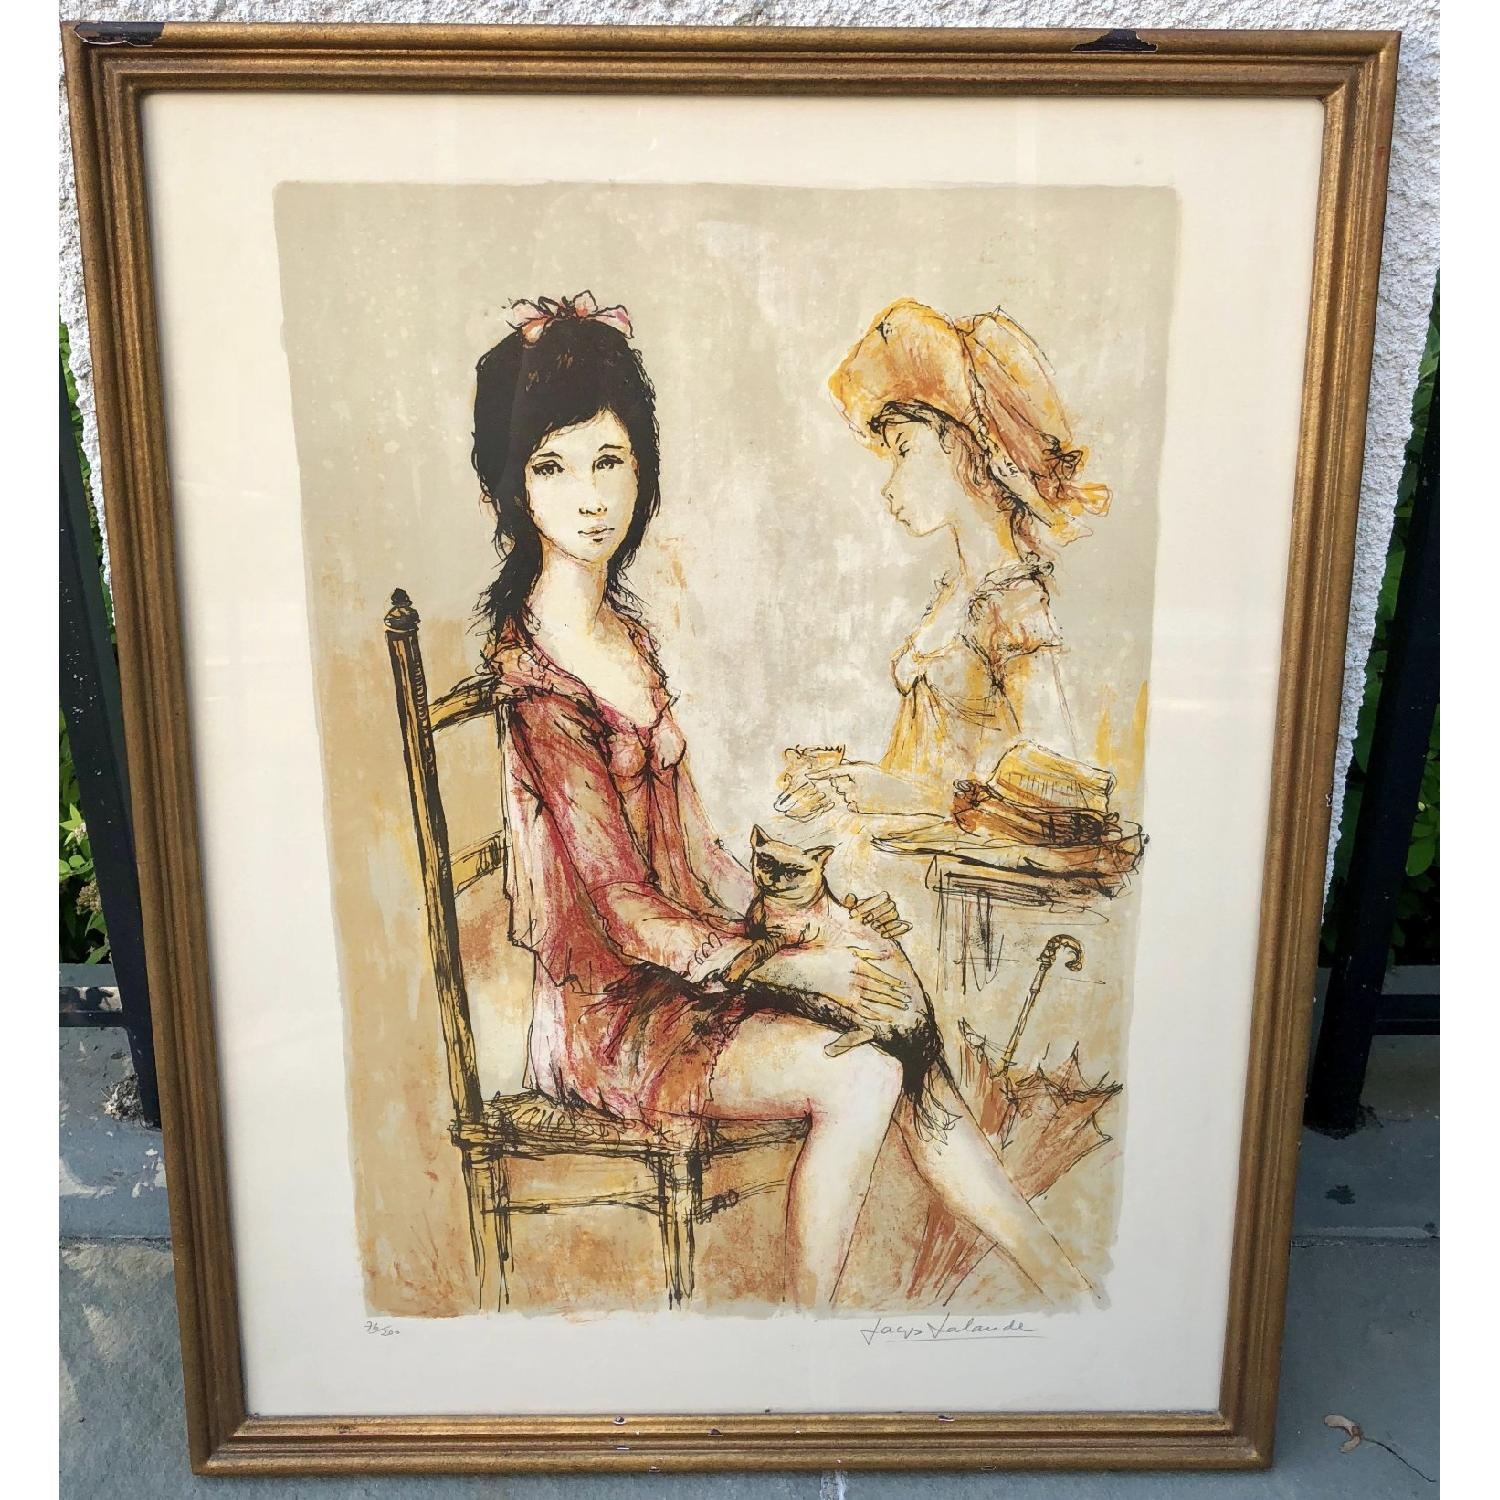 Signed & Numbered Midmod Jacques Lalande Lithograph